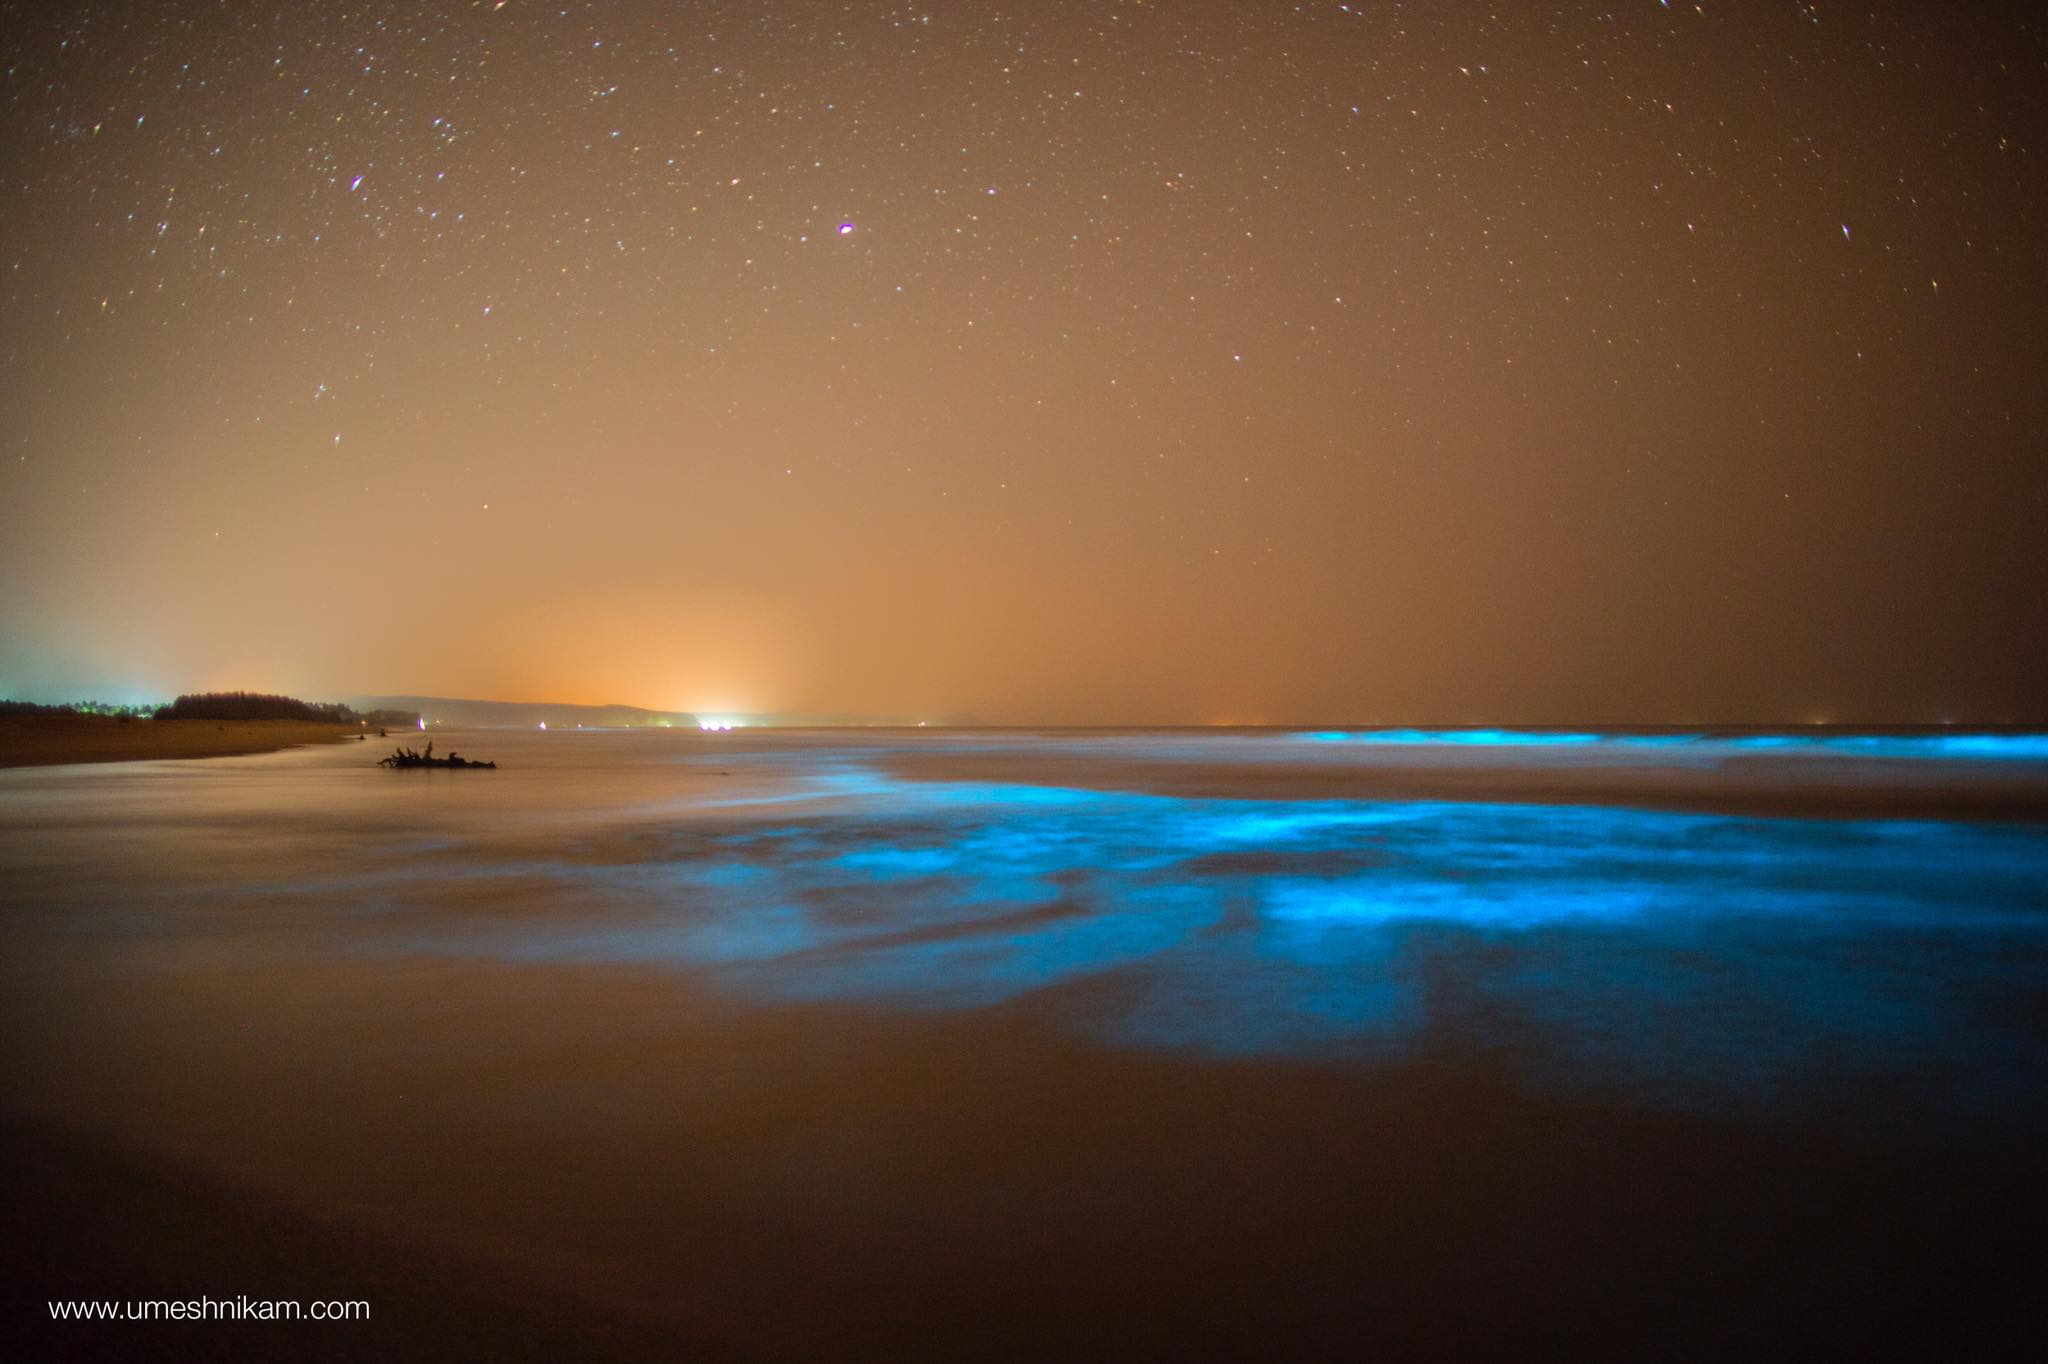 MAHARASHTRA/GUHAGAR/Bioluminescence  Dinoflagellates are a group of flagellate protists belonging to the phylum dinoflagellata. On the coastal regions, one can observe bioluminescence on while the sea waves break on the shore. The bioluminescence is caused due to a reaction of luciferin and luciferase.